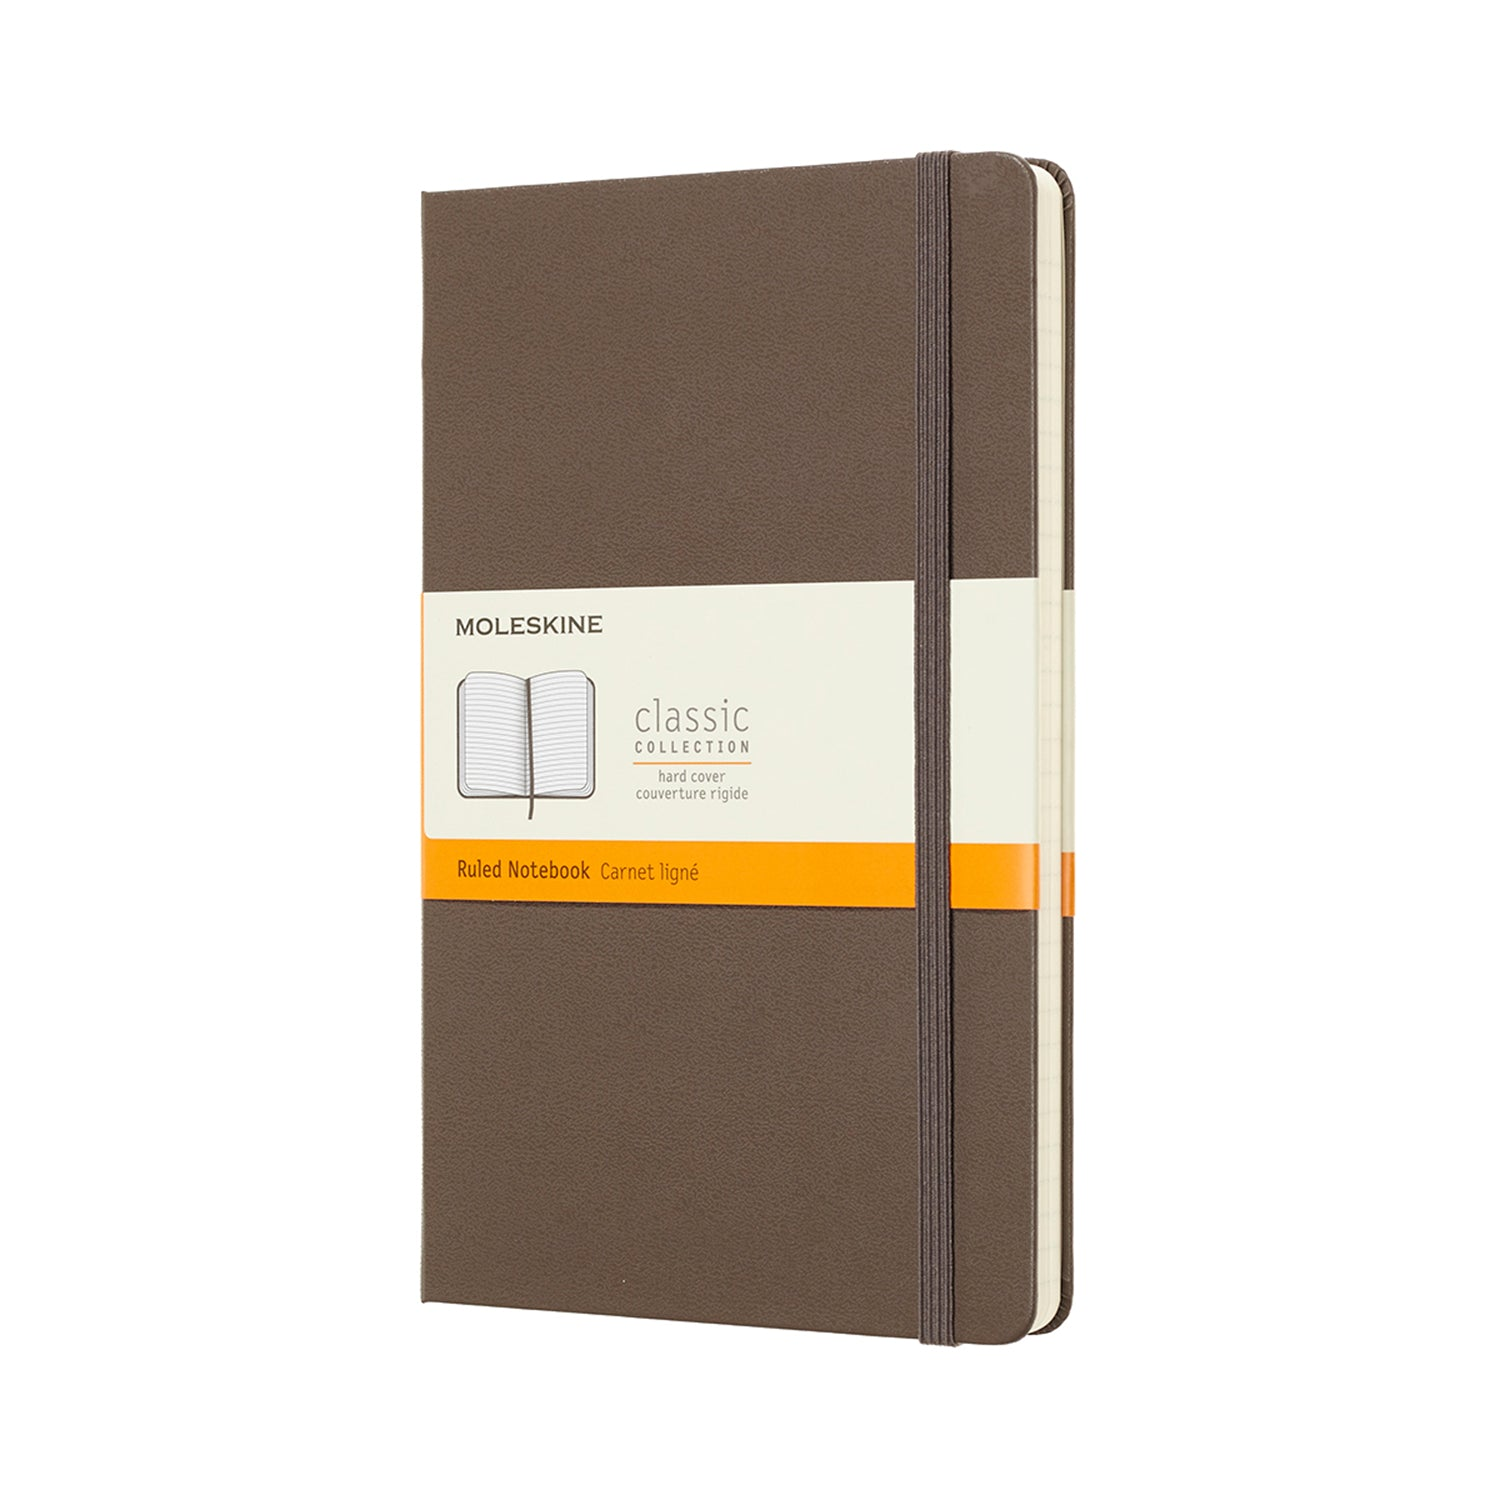 Large Soft Brown Hard Cover Moleskine Ruled Notebook